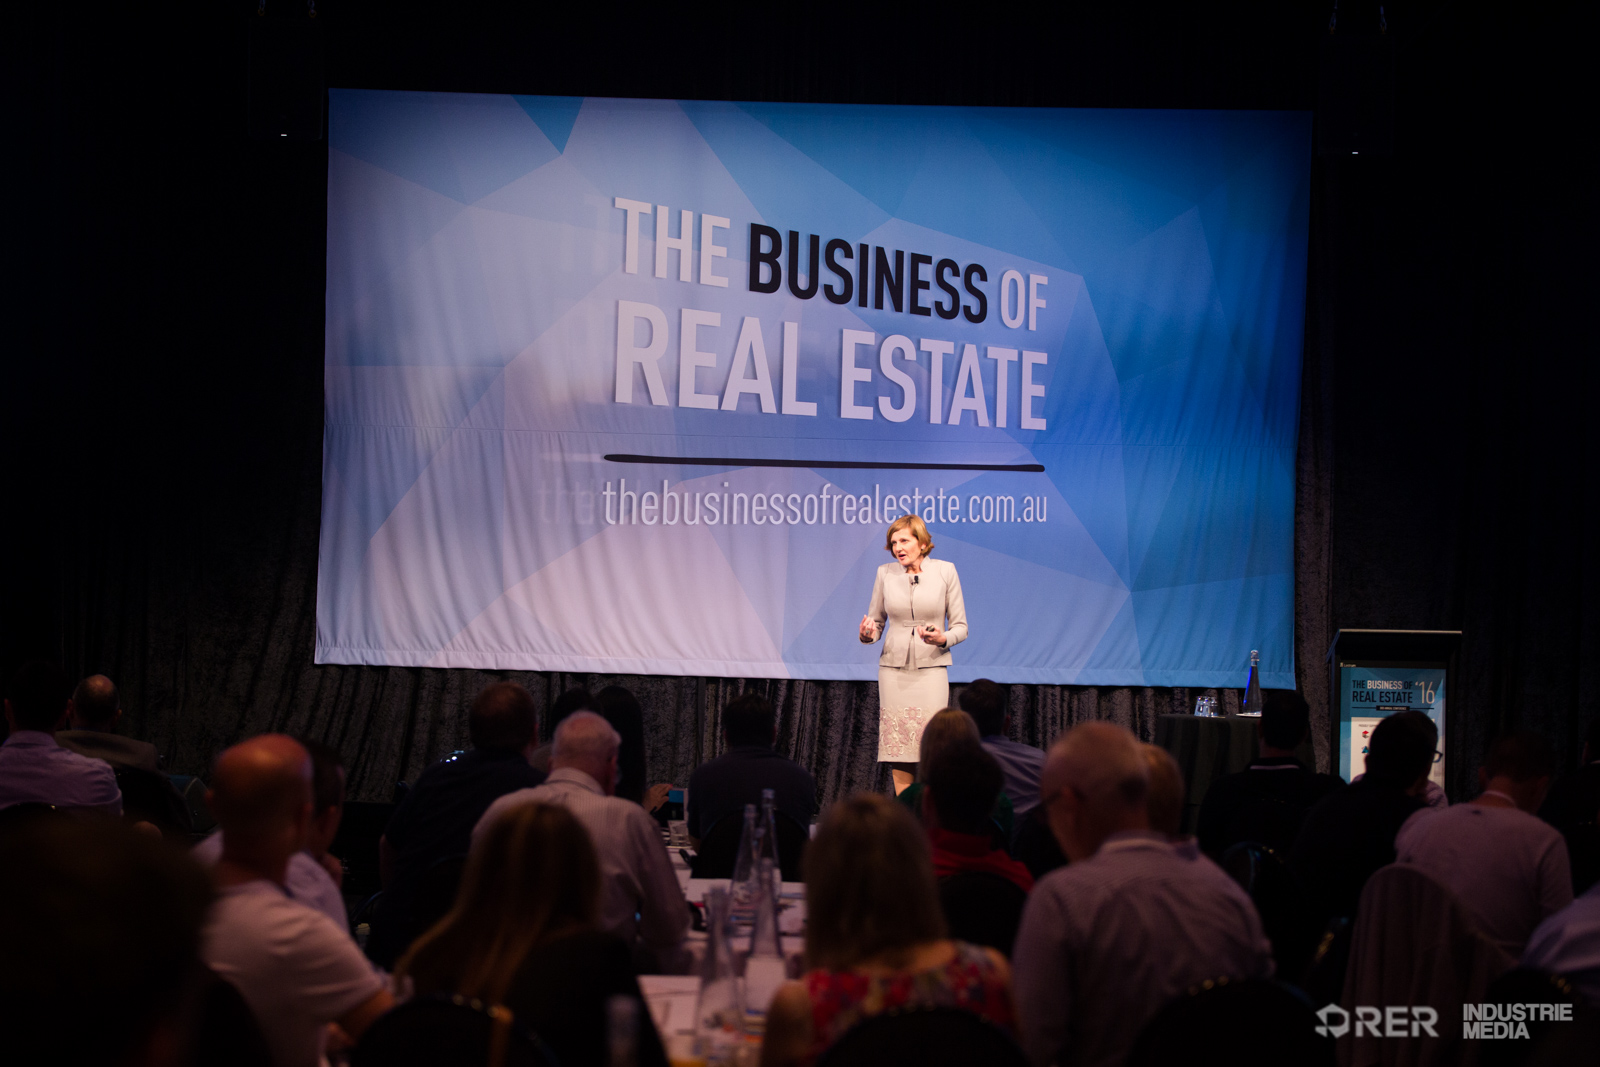 https://www.thebusinessofrealestate.com.au/wp-content/uploads/2016/09/RER_BUSINESS_OF_REAL_ESTATE_DAY_2-14.jpg